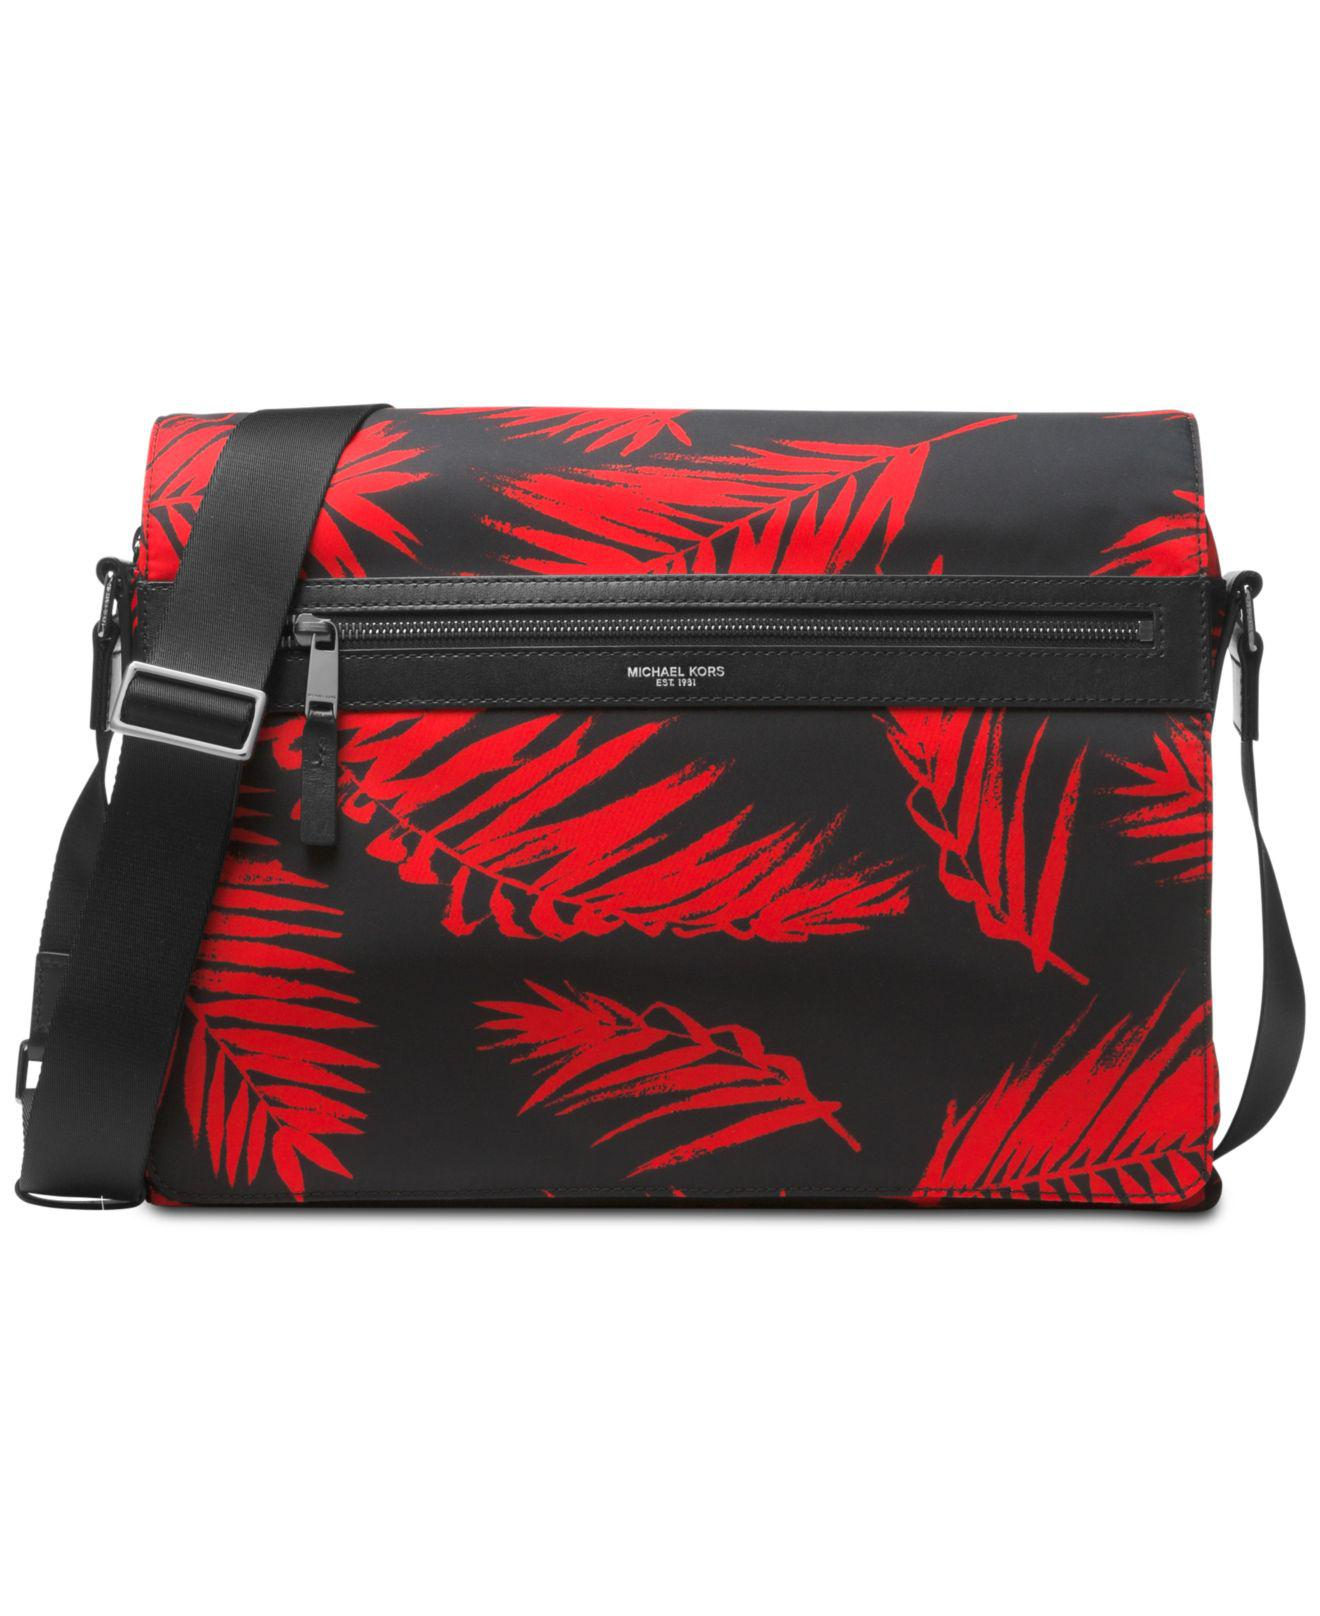 6e0b7a1444e30 Michael Kors - Red Kent Printed Messenger Bag for Men - Lyst. View  Fullscreen